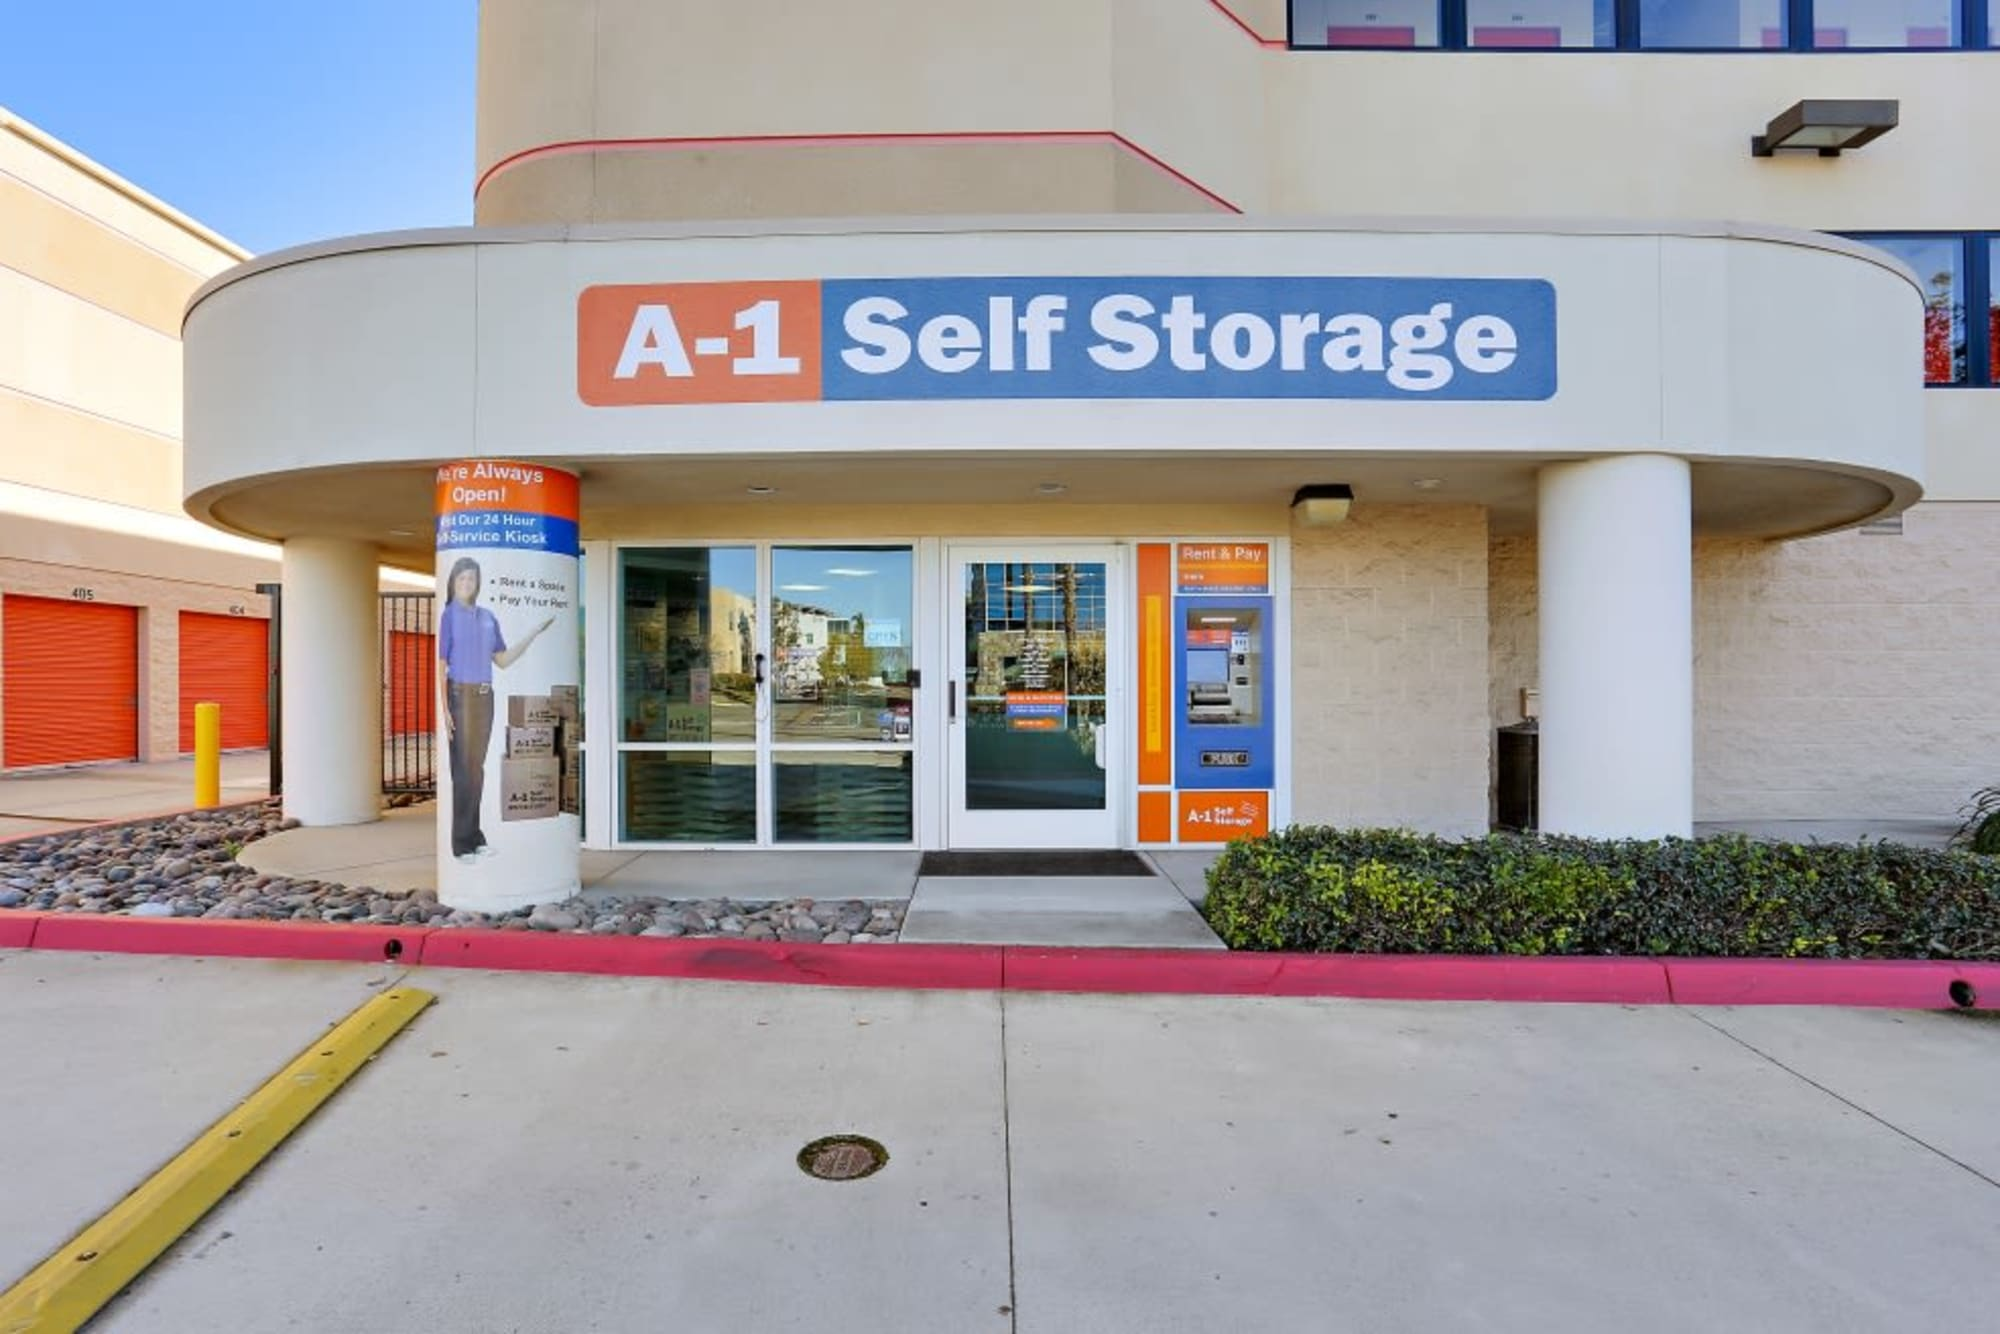 Entrance to the leasing office at A-1 Self Storage in San Diego, California